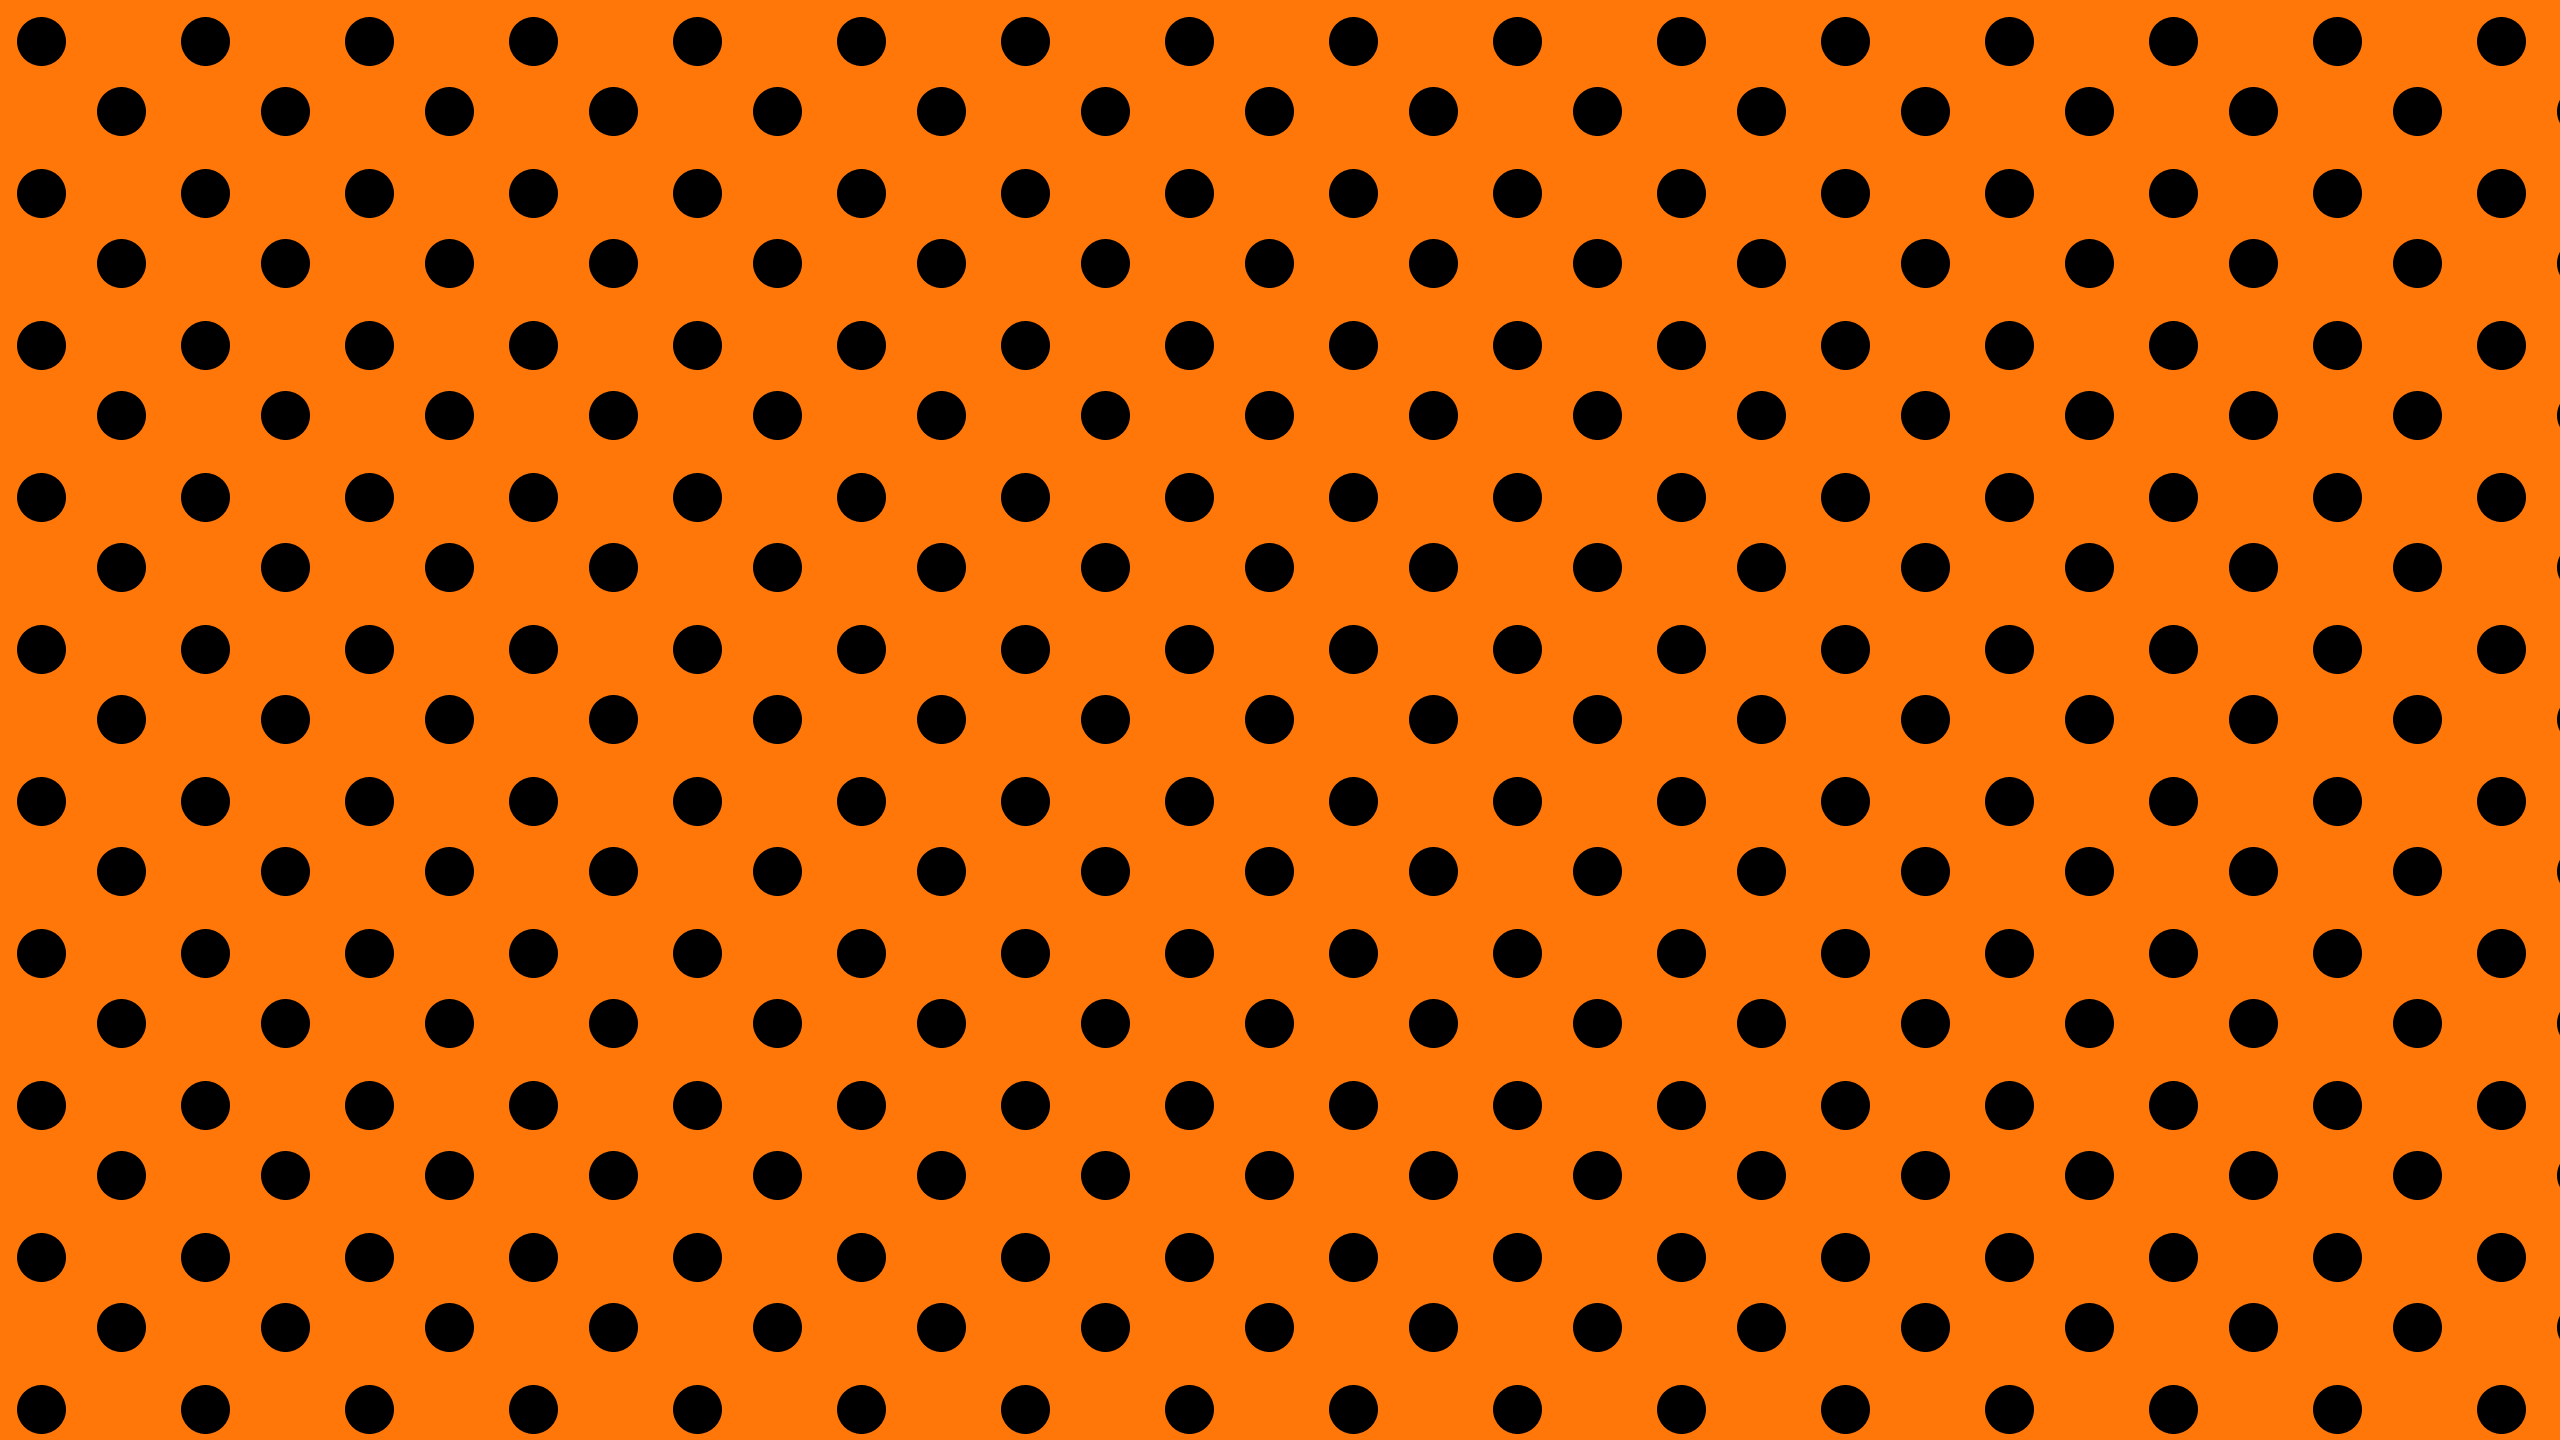 Large Orange Black Desktop Wallpaper is easy Just save the wallpaper 2560x1440